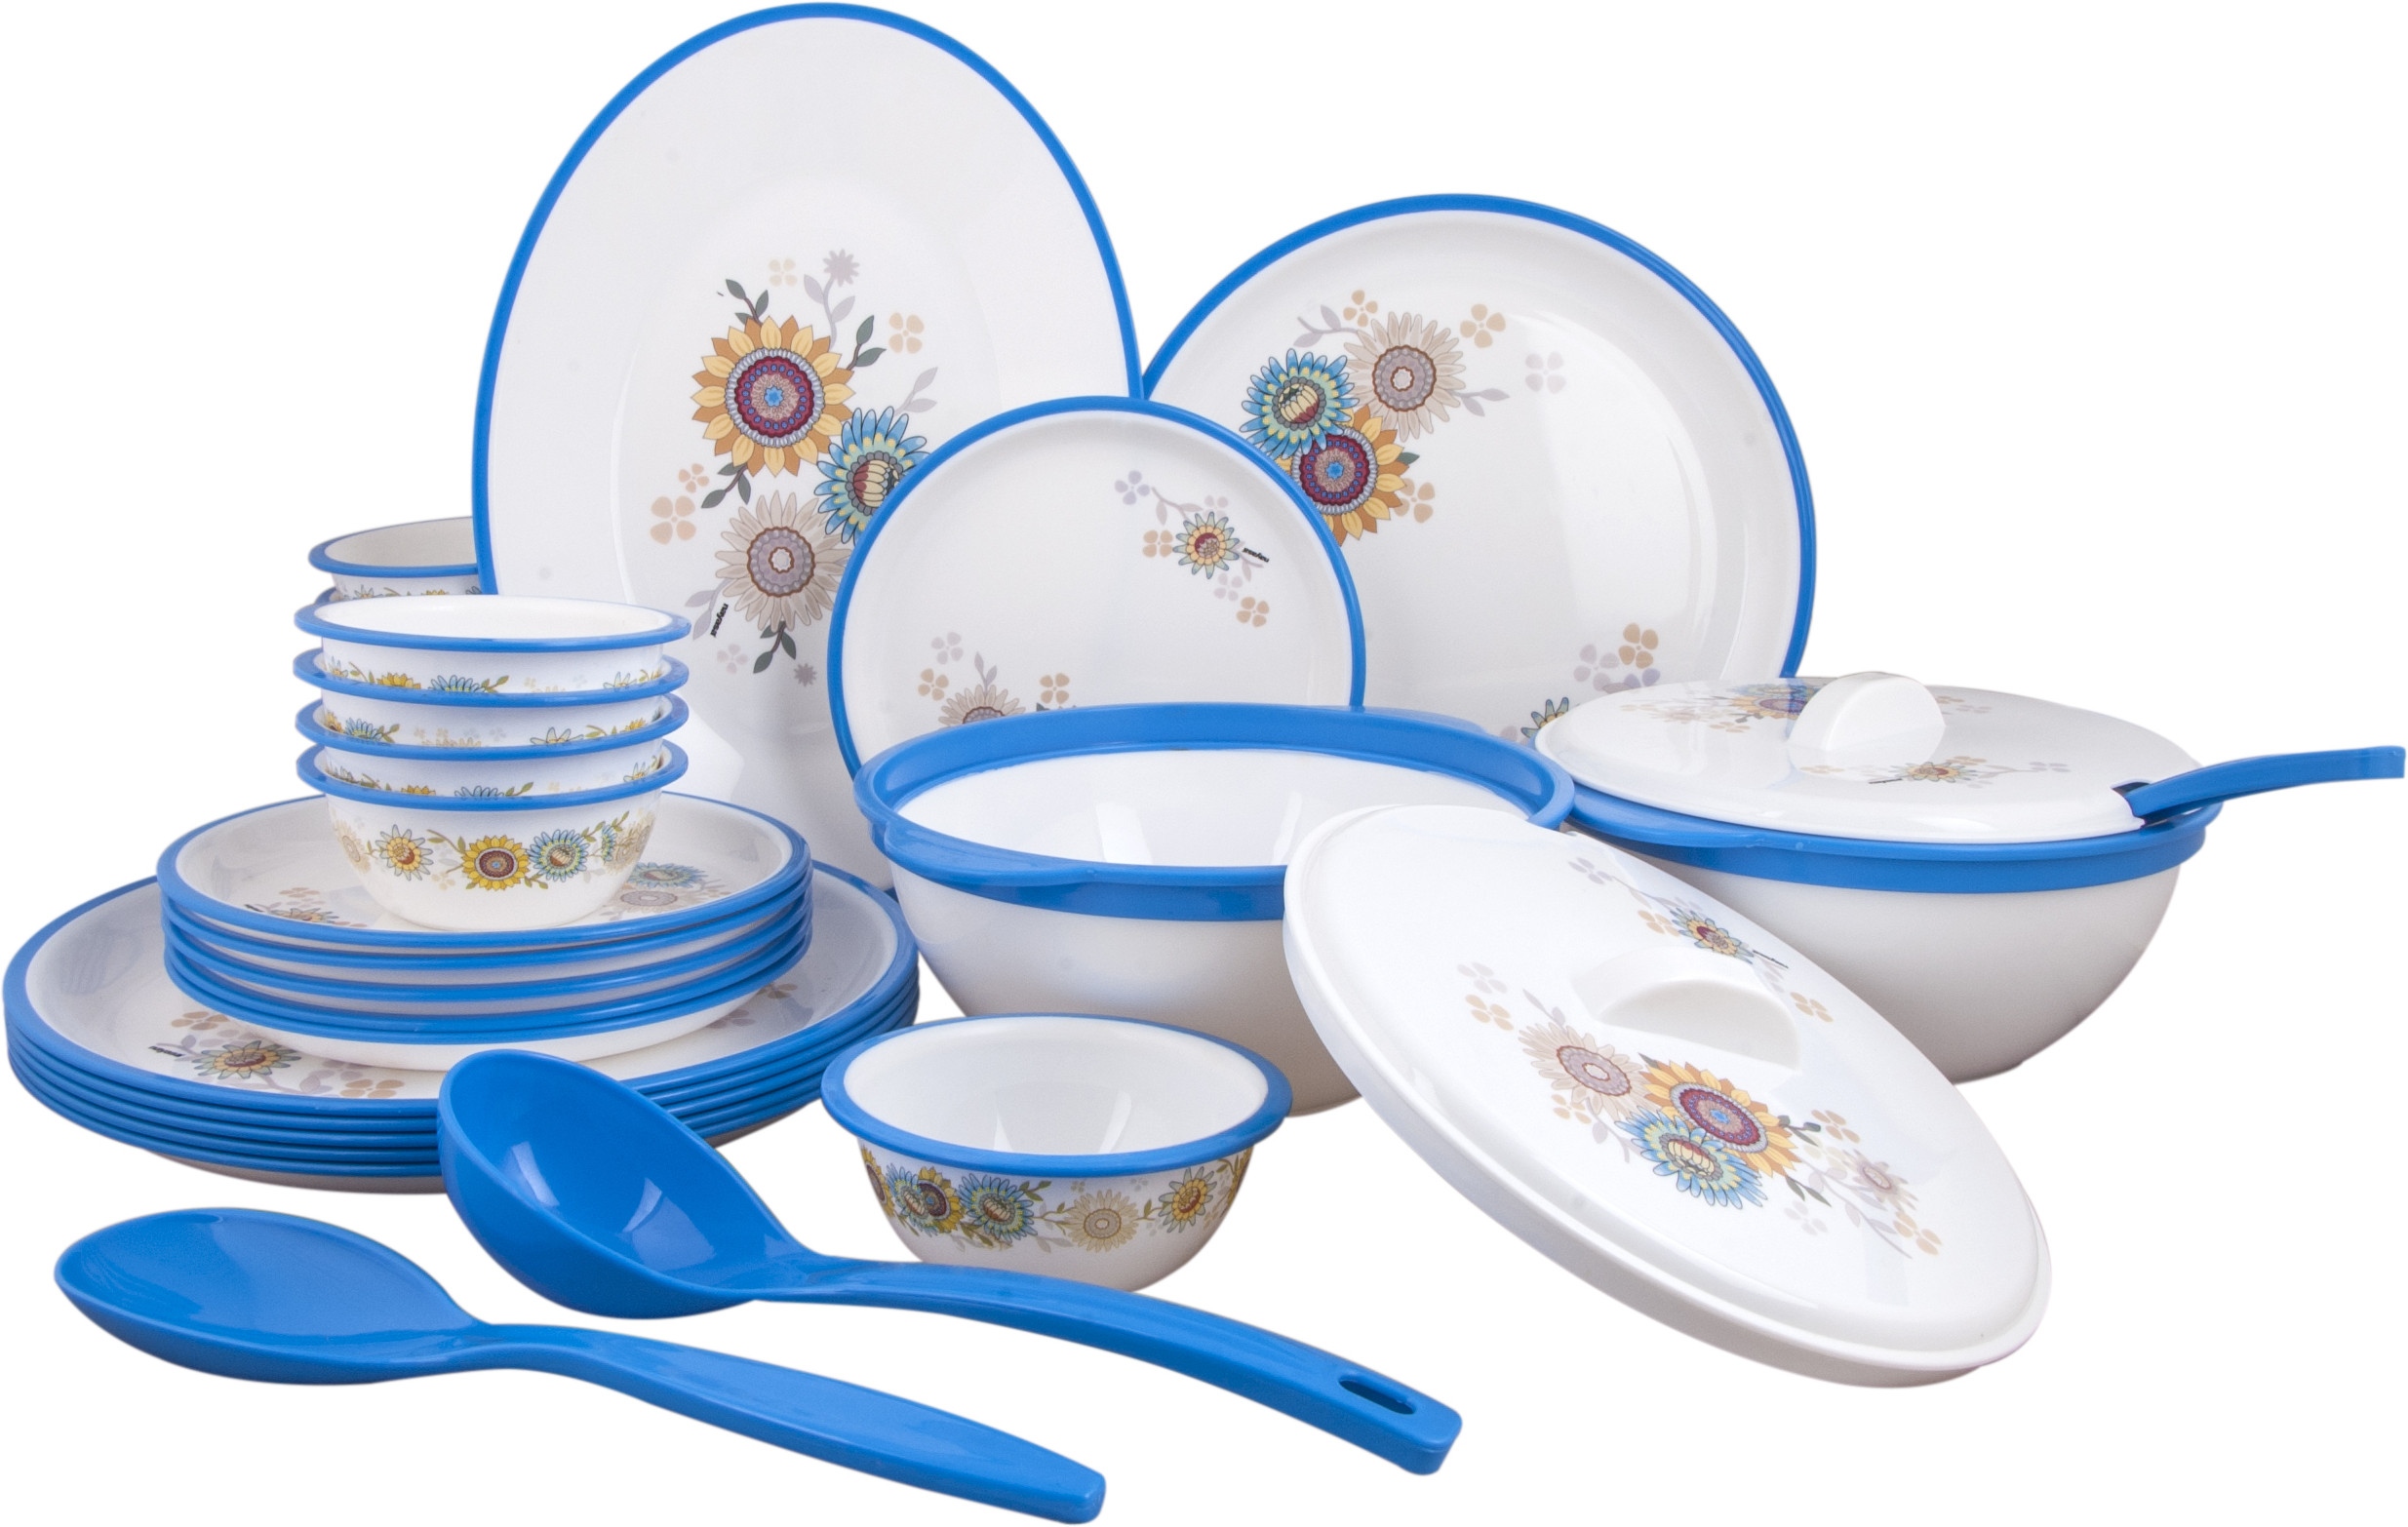 Wedding Gifts: Dinner Set is one of the best Useful Shopping Tips